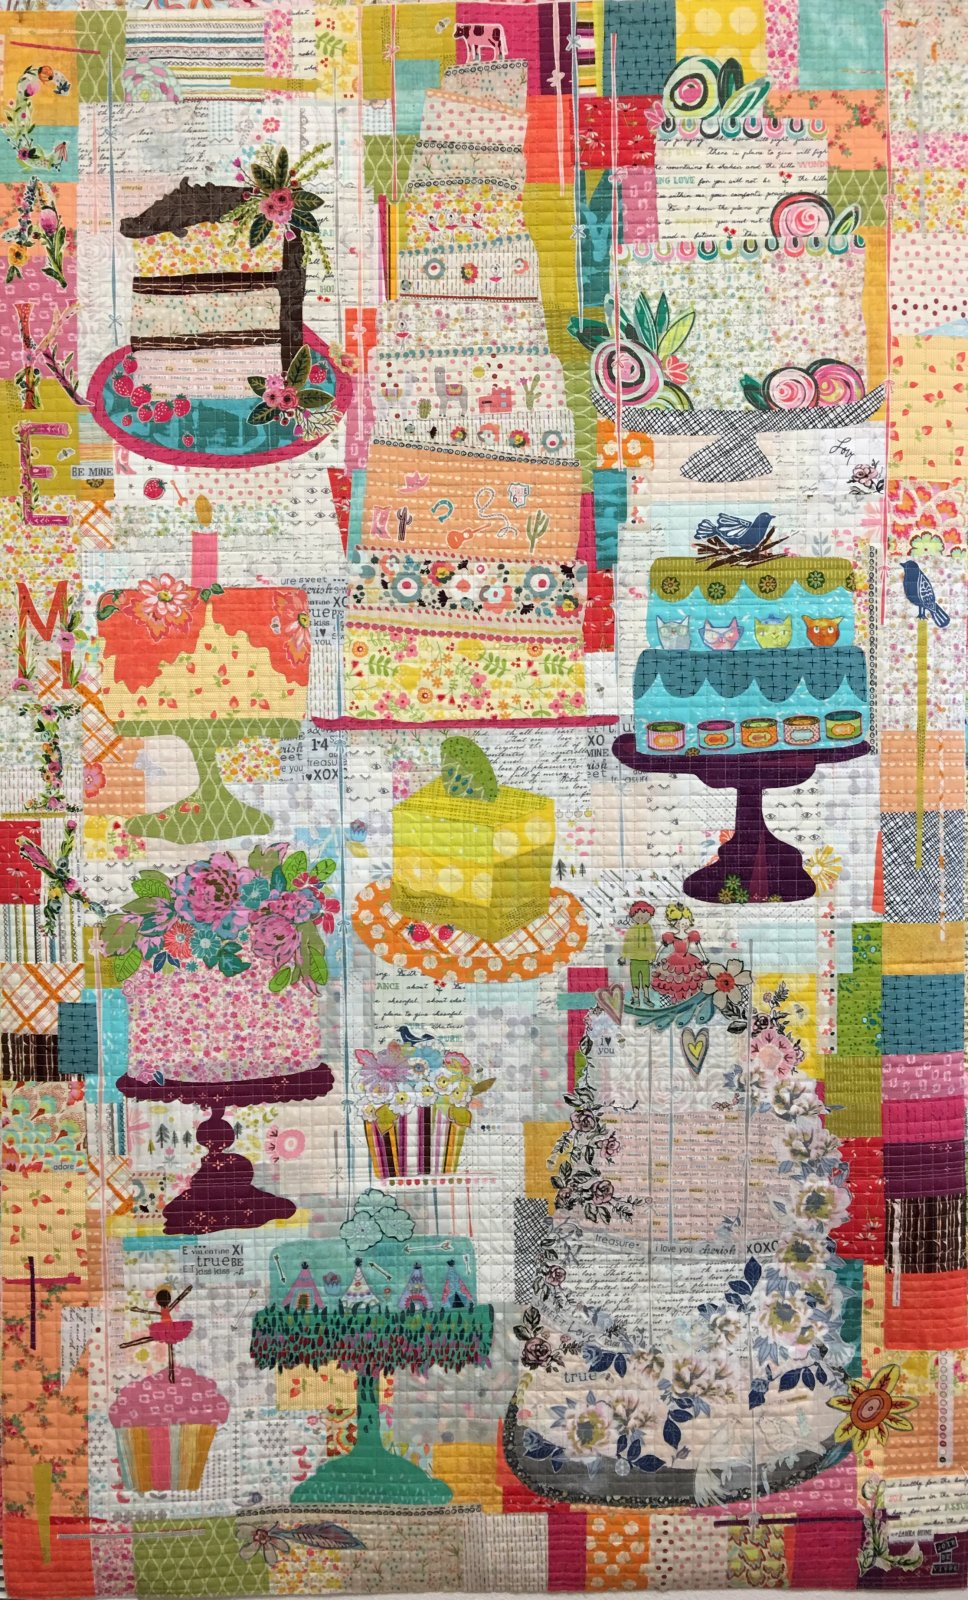 000FWLHCM -  Cake Mix Collage Pattern by Laura Heine